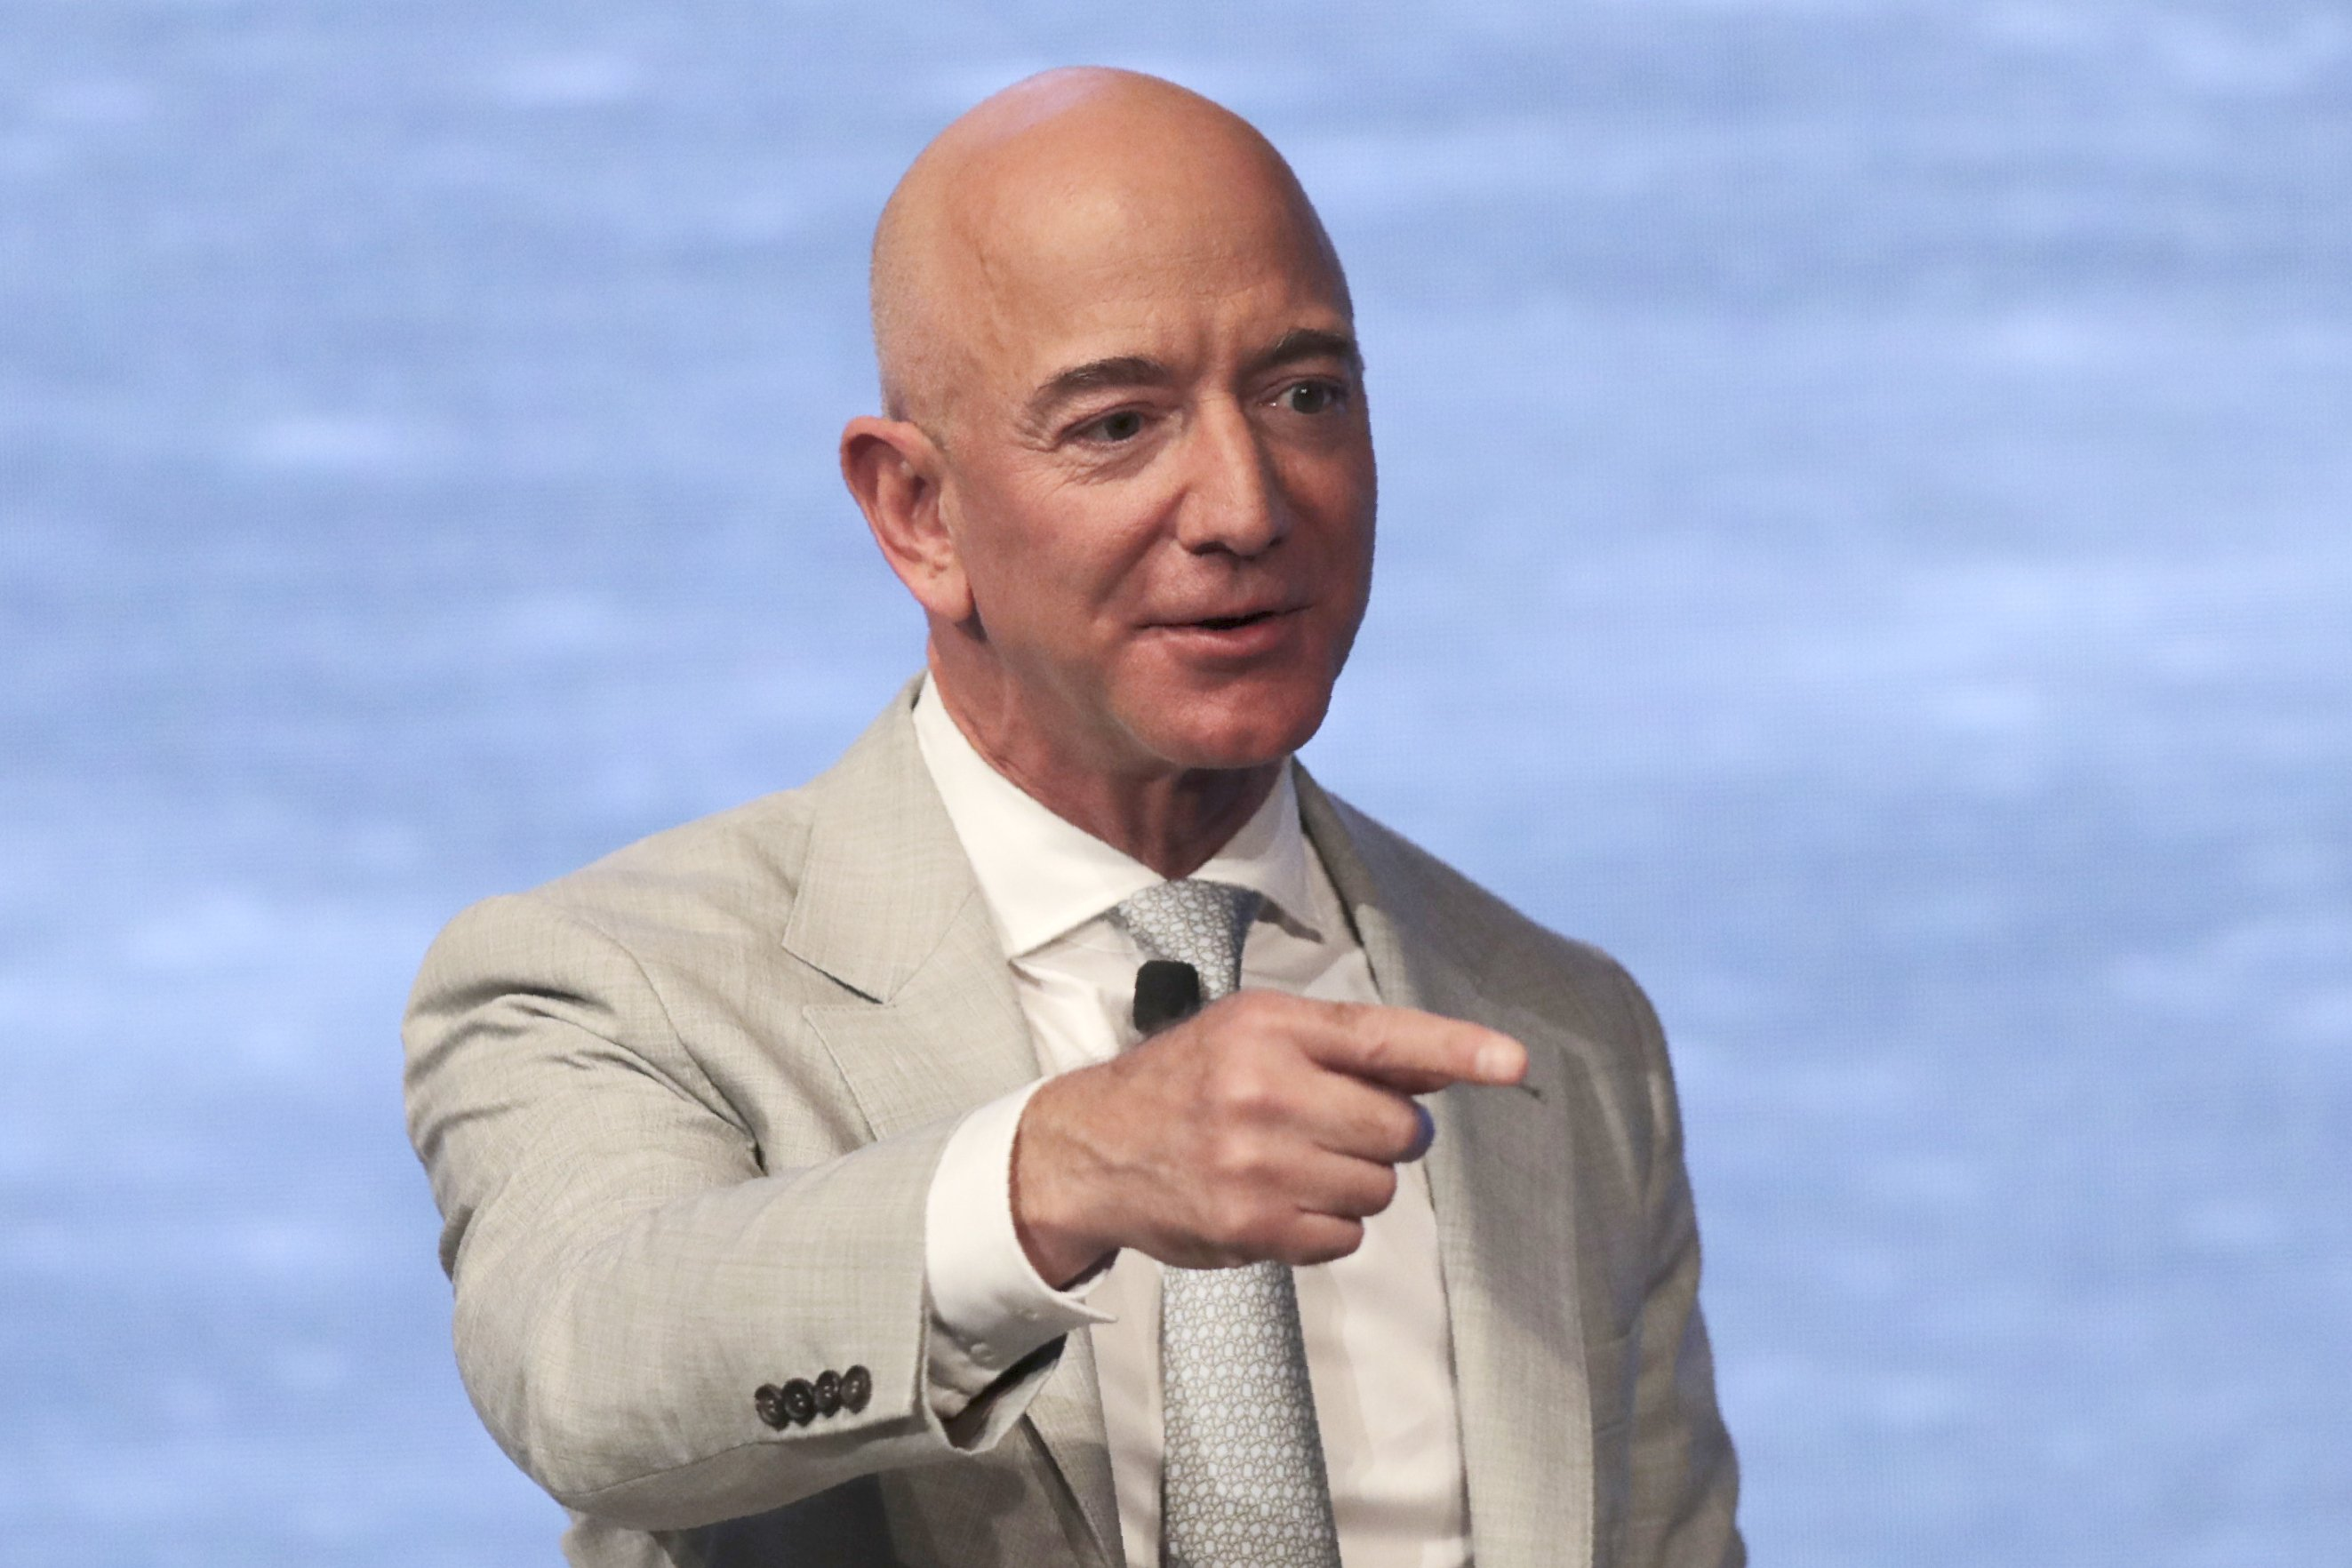 Bezos and Bloomberg among top 50 US charity donors for 2020 - Associated Press